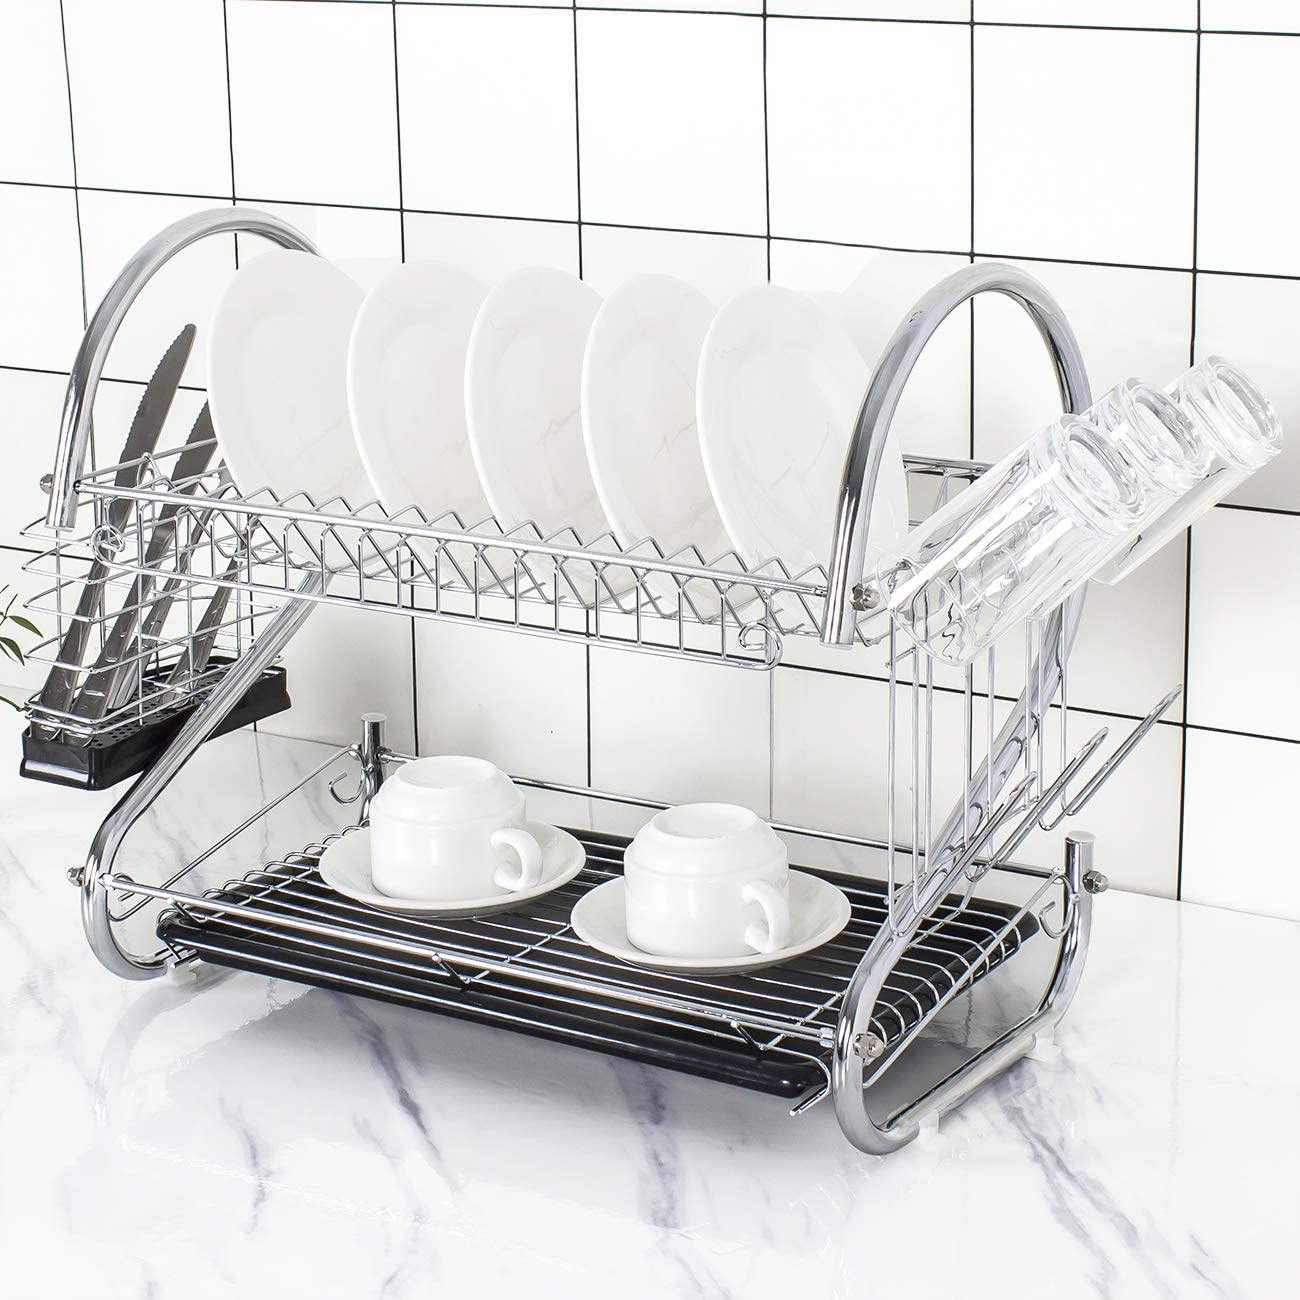 Tahlegy Black Drain All items free shipping Board Chrome Cutlery 2 Translated Dish Tier Drainer Dry